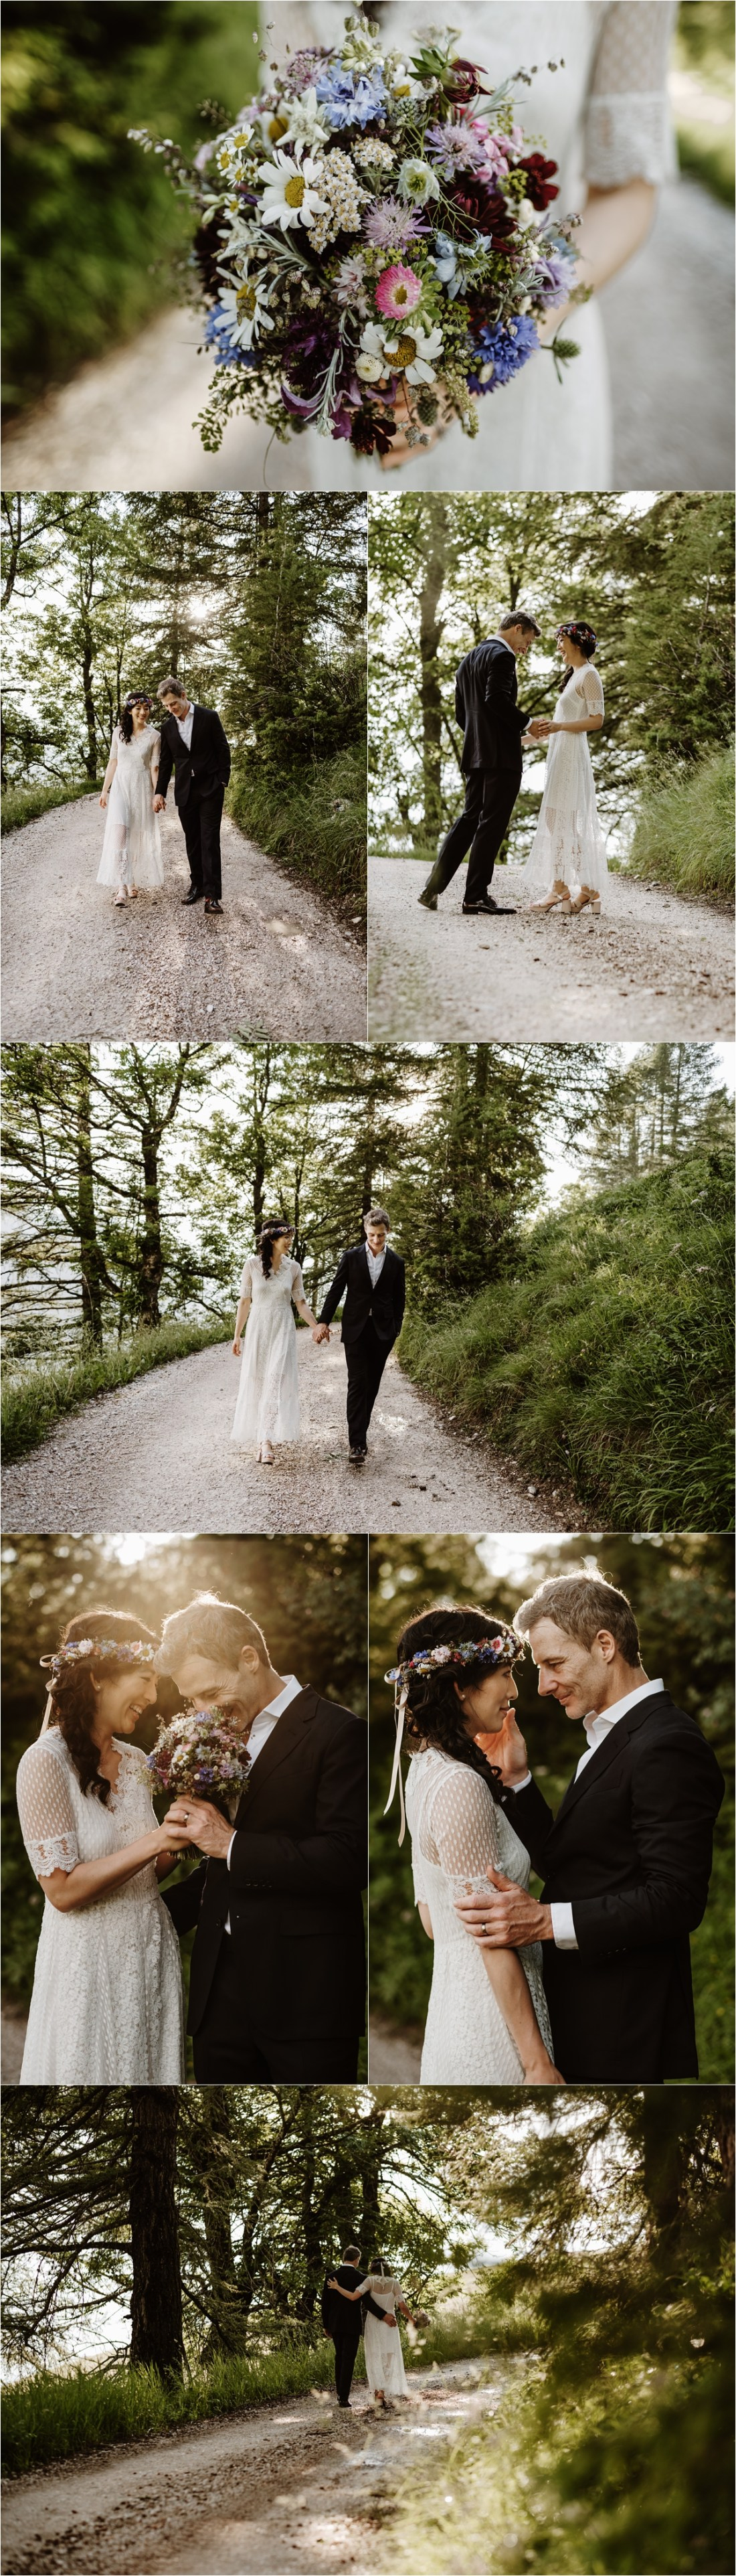 The bride and groom walk along a mountain path in the Dolomites. Photo by Wild Connections Photography